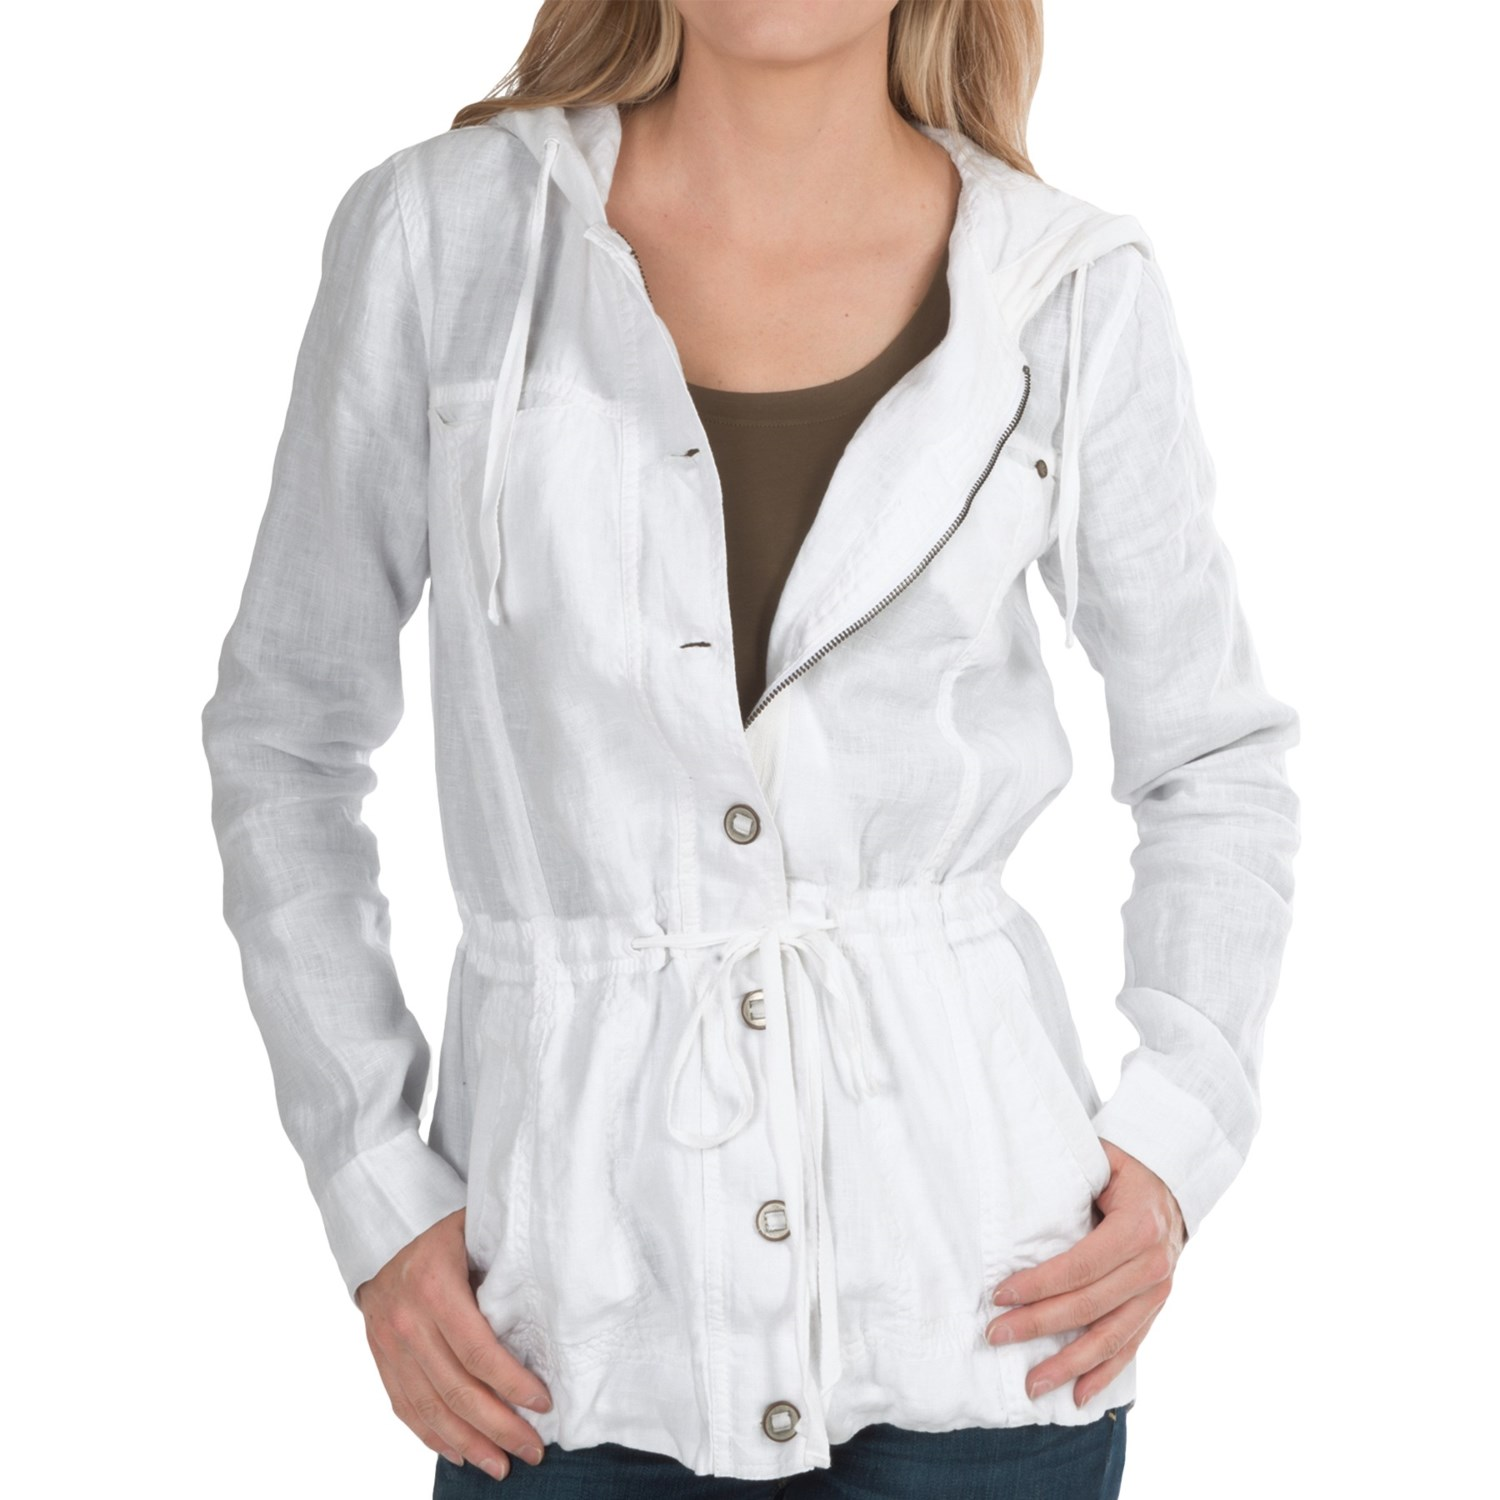 Michael Stars Linen Anorak Jacket (For Women) in White. Hover to zoom